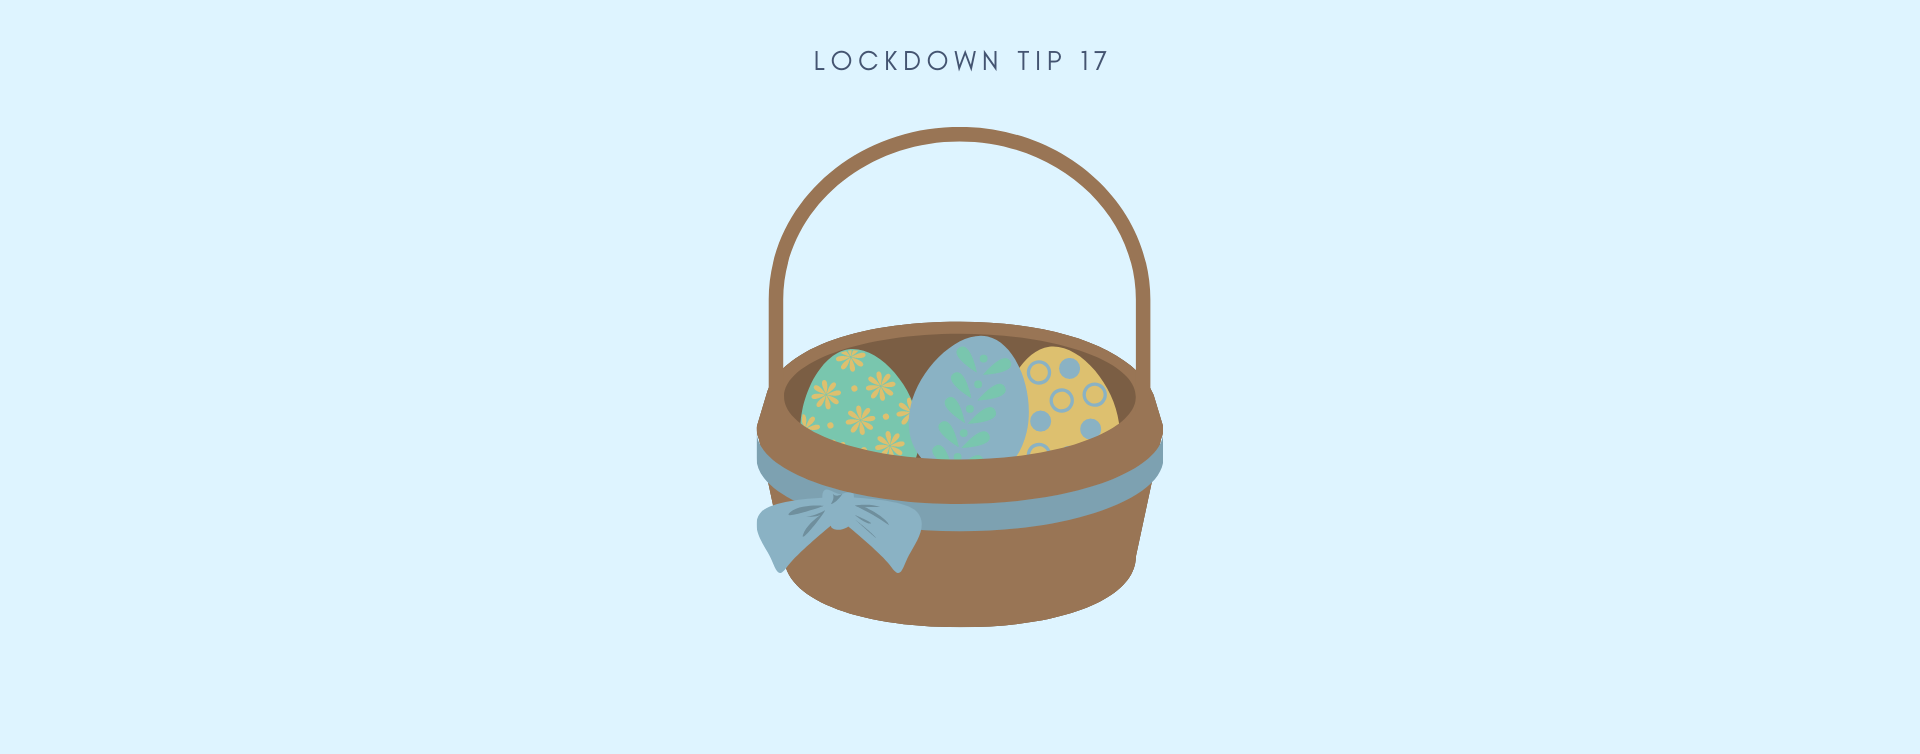 MCSA Lockdown Tip 17